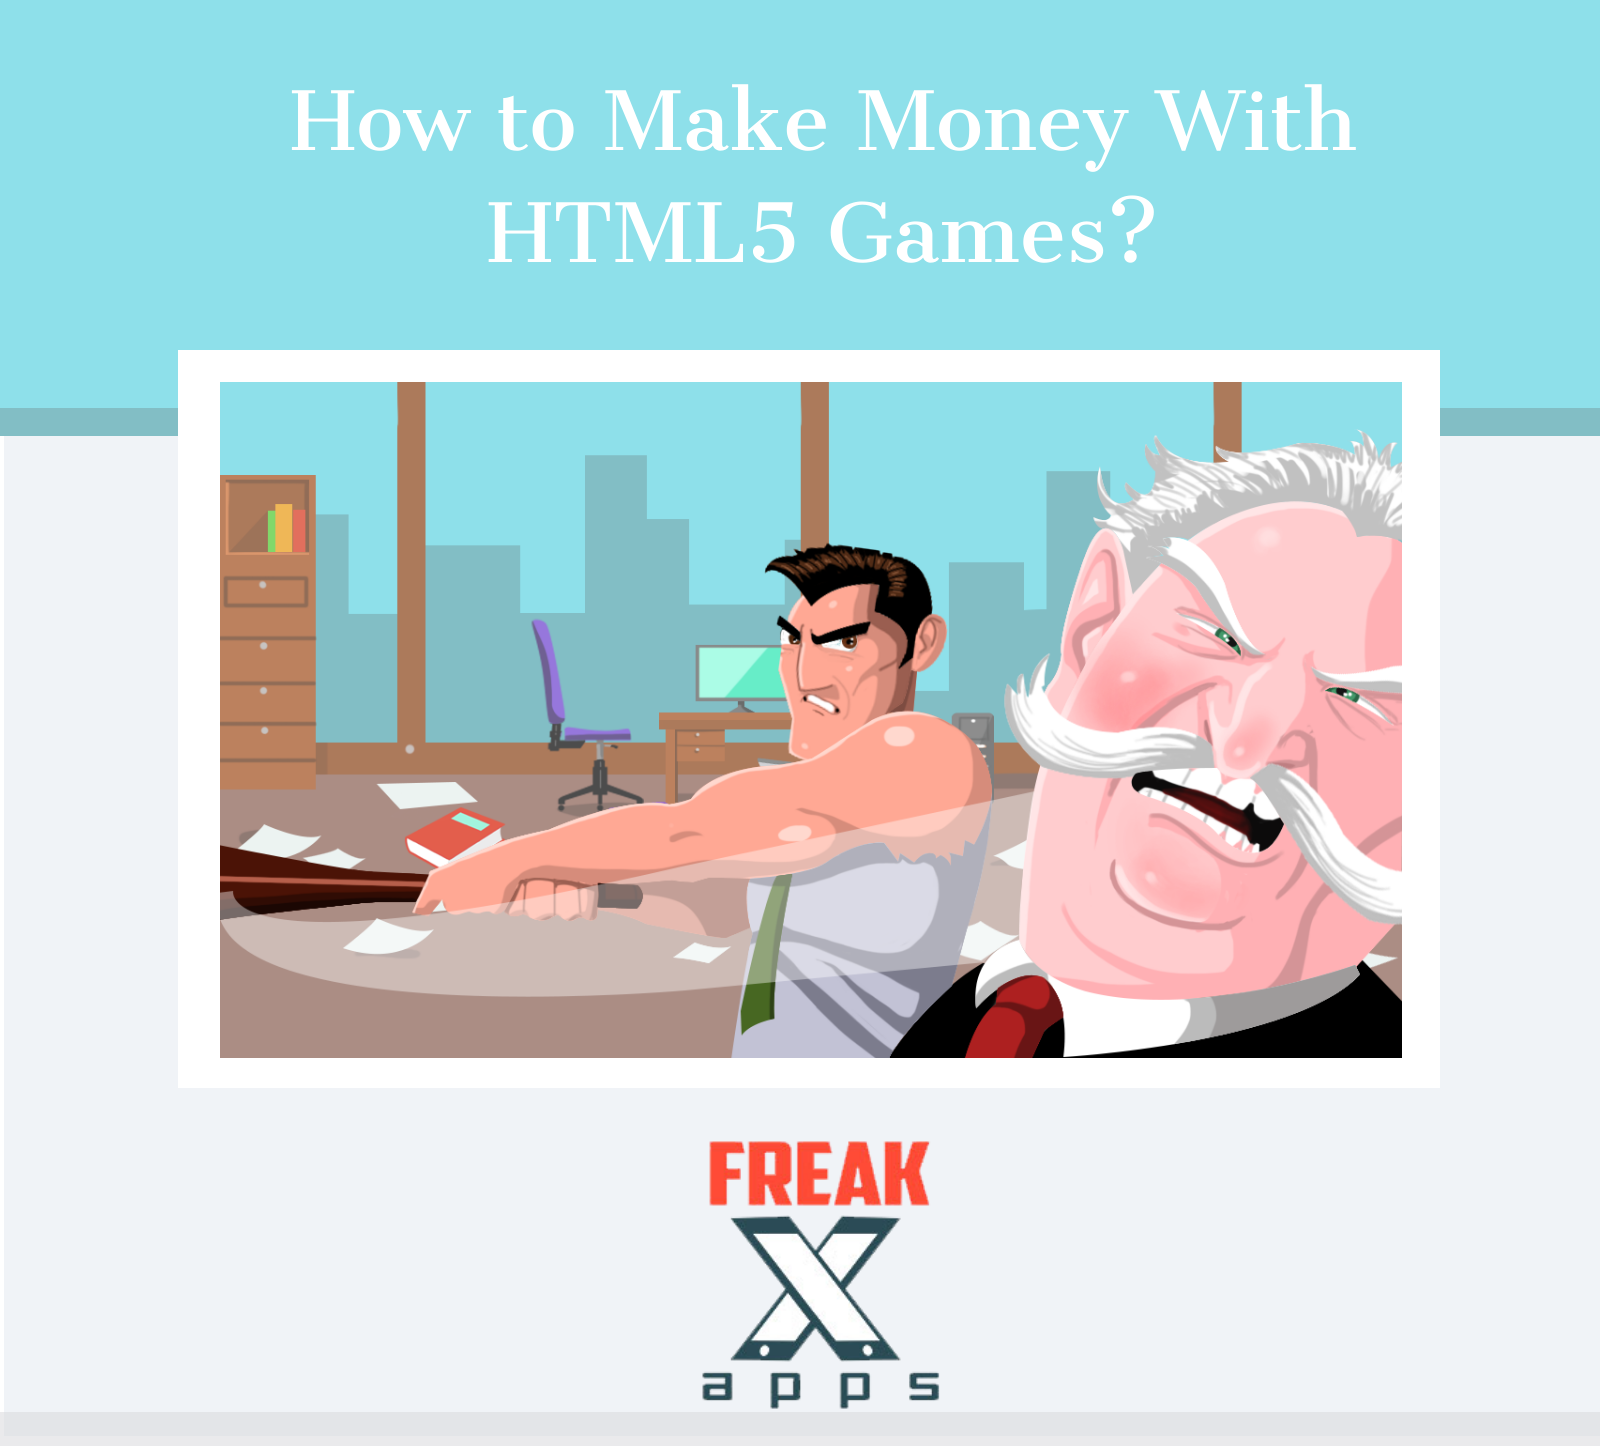 How to make money with HTML5 games?